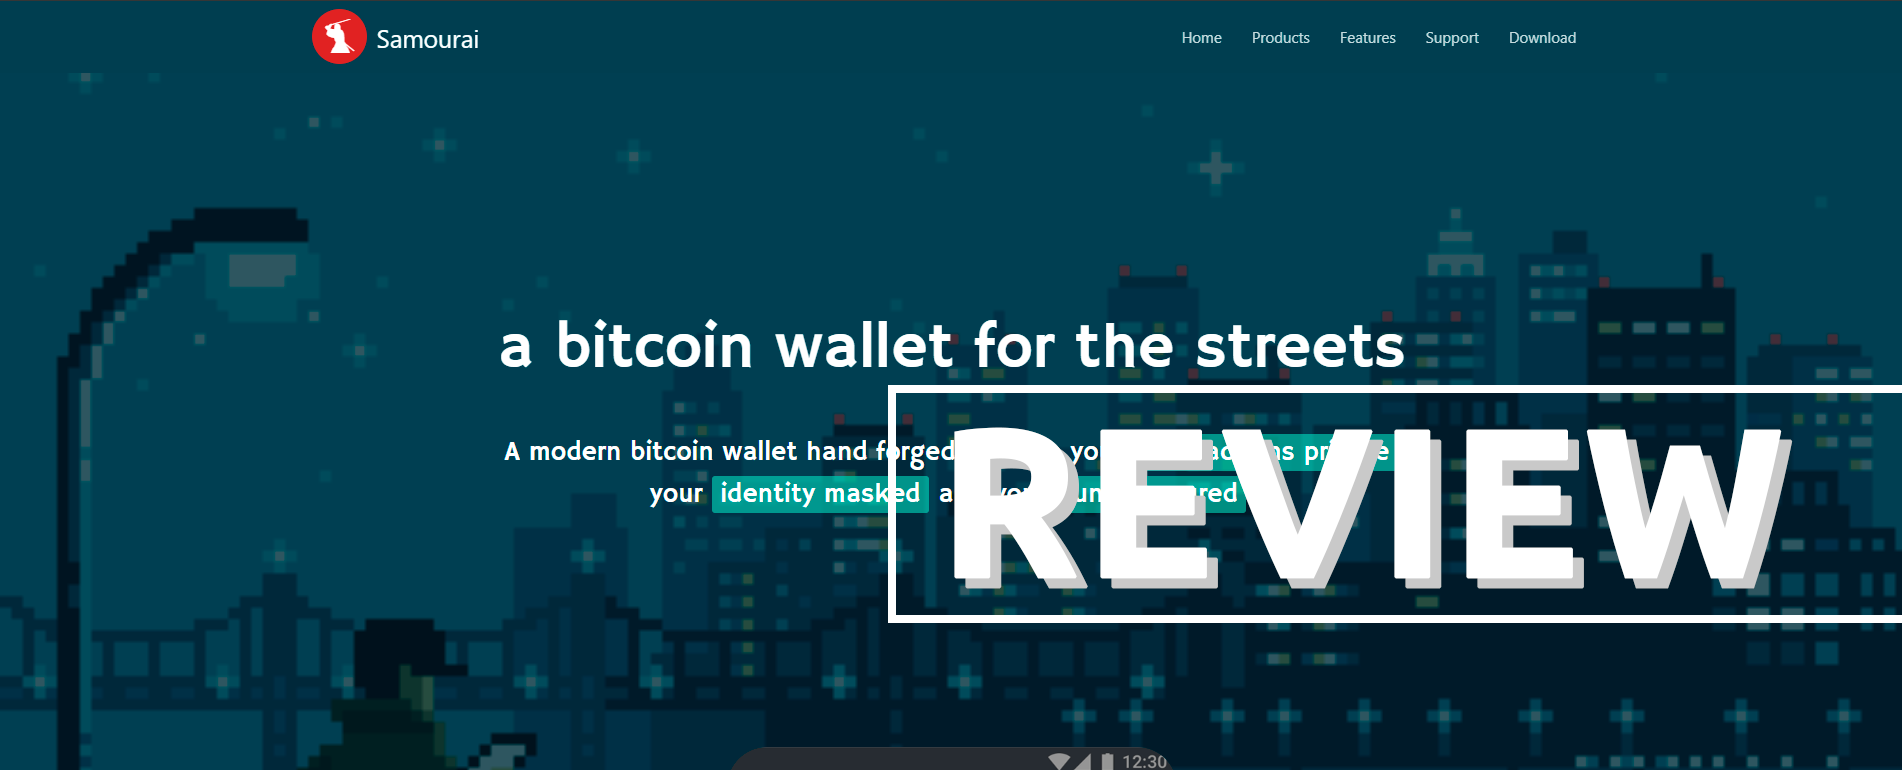 samourai-wallet-review